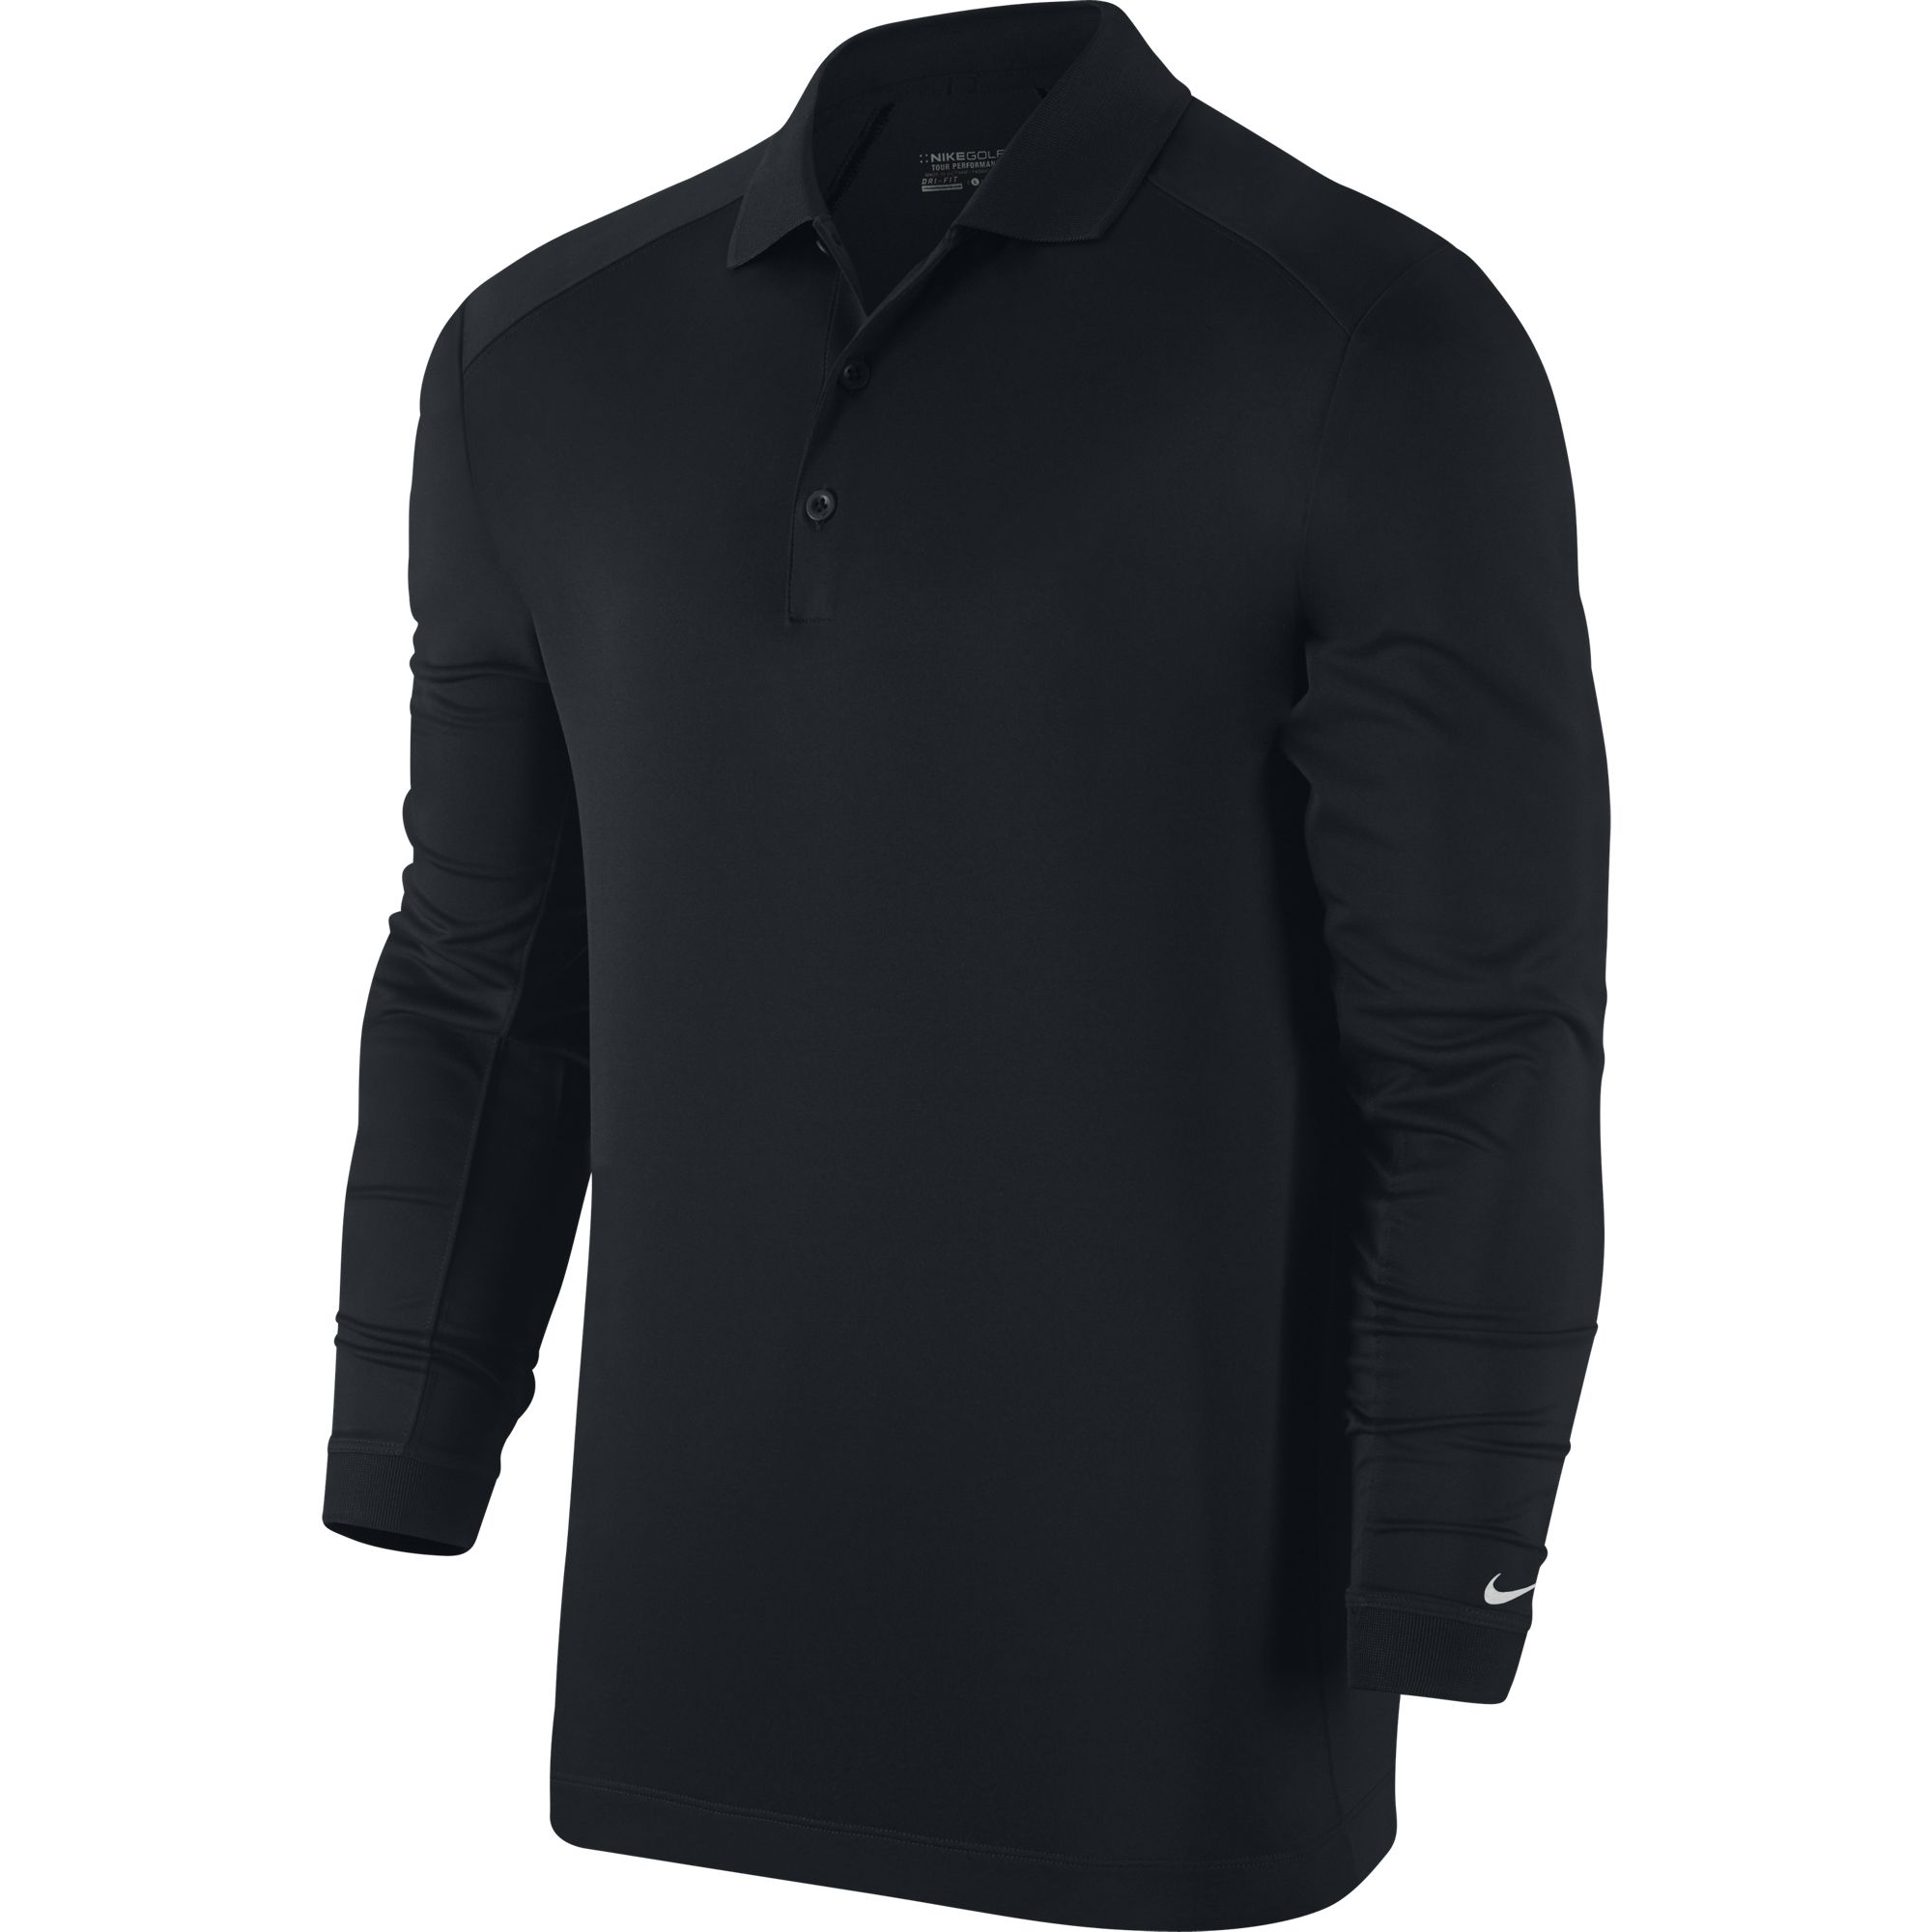 2015 Nike VICTORY Long Sleeve Polo Men's Dri Fit Golf ...